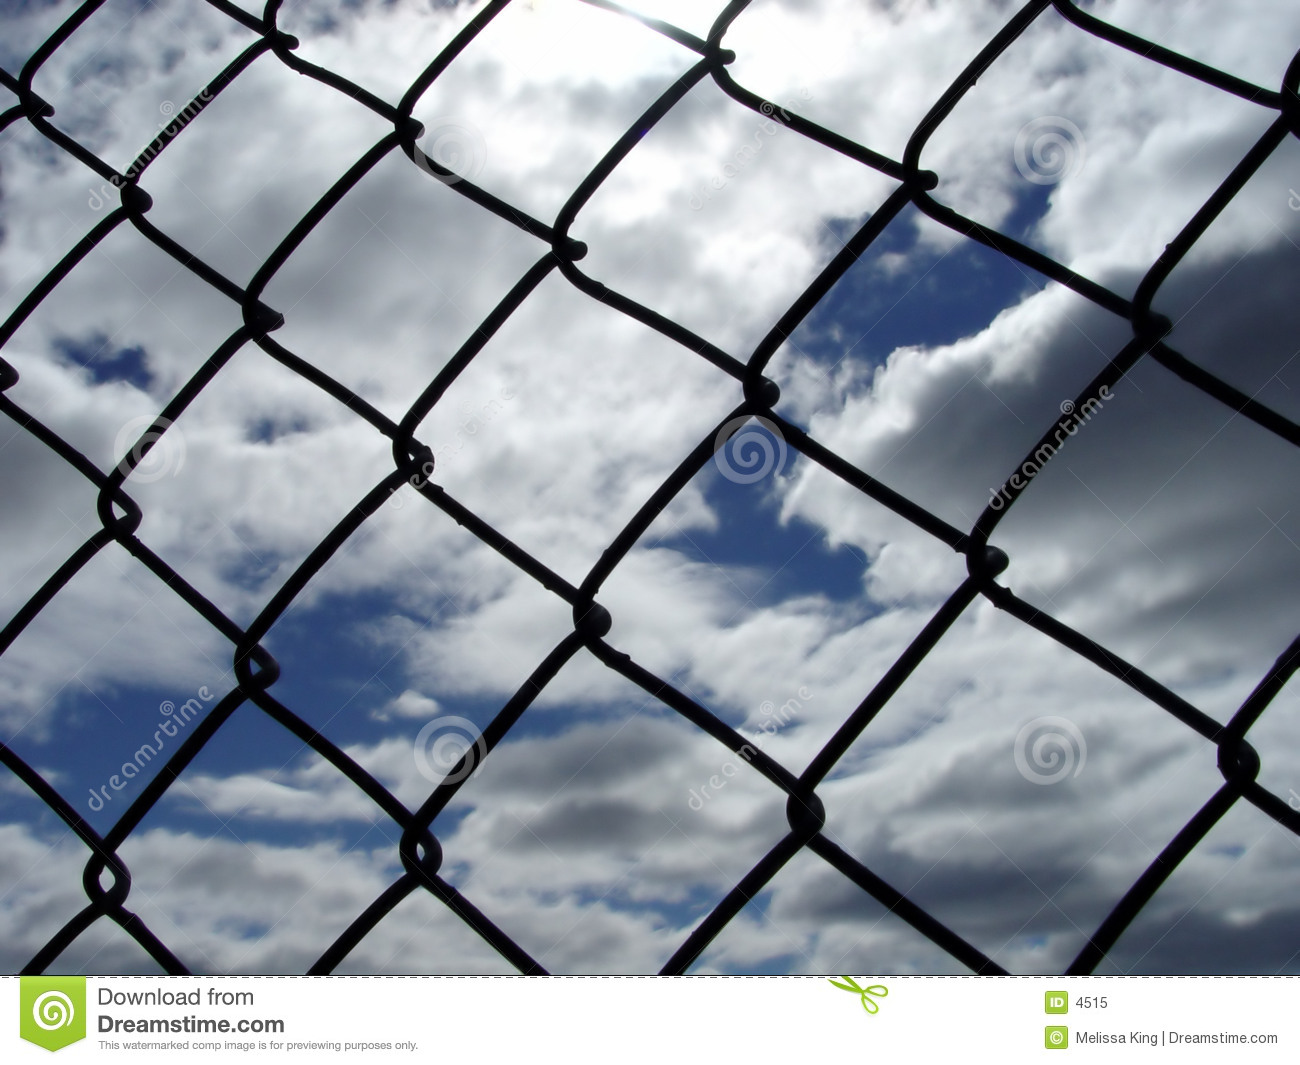 Though a Fence